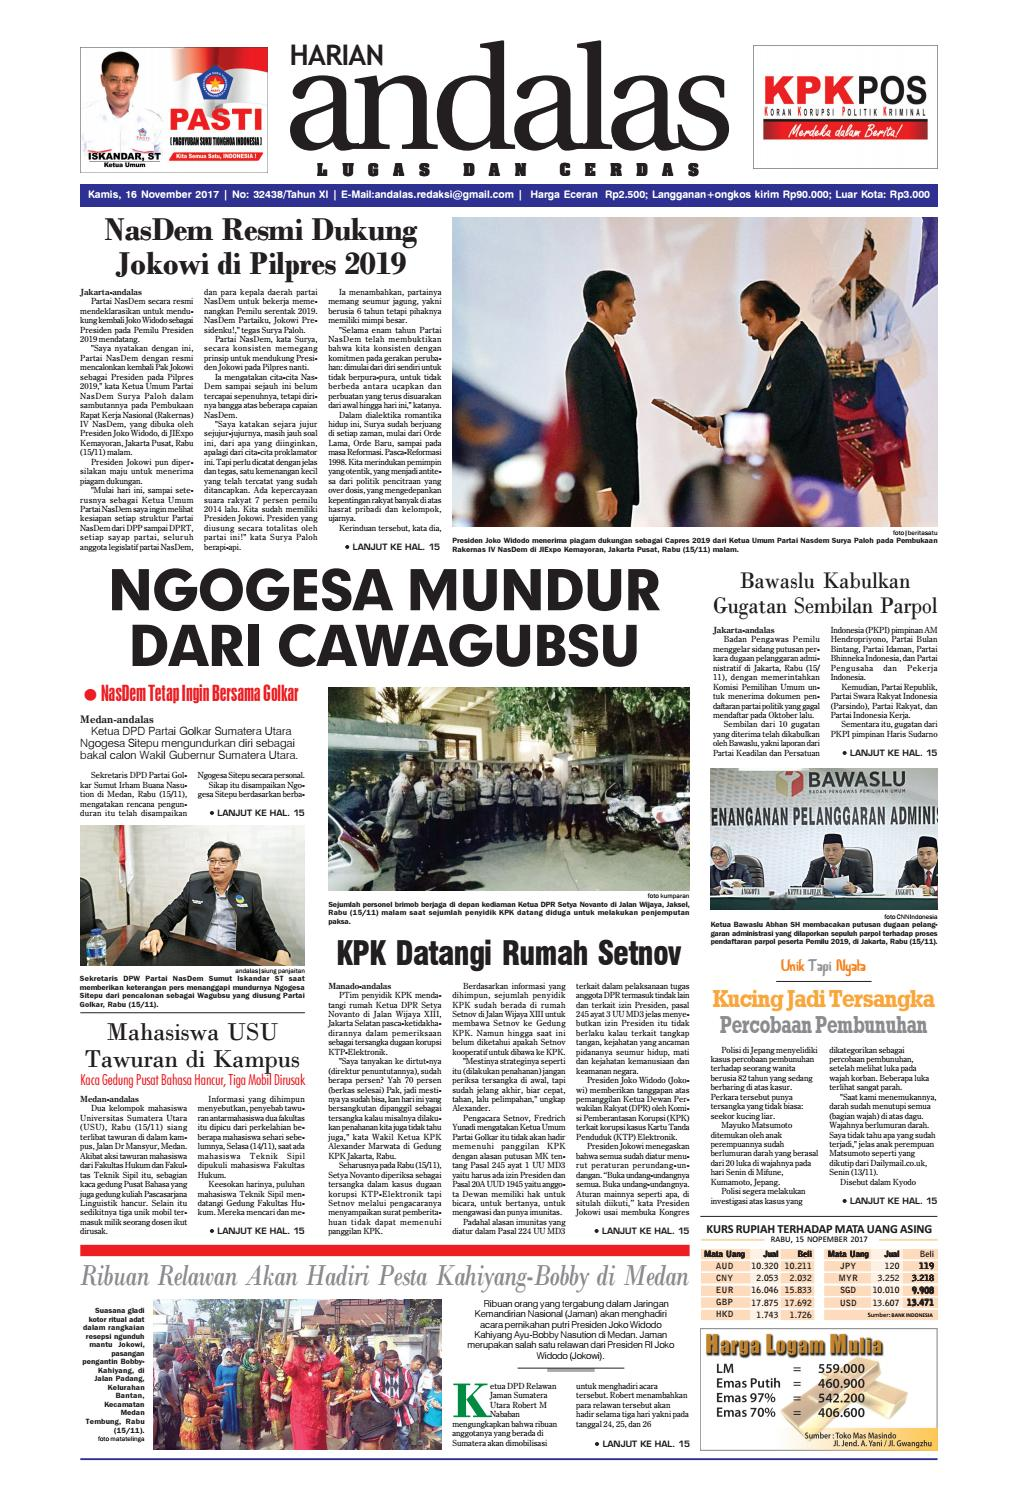 Epaper andalas edisi kamis 16 november 2017 by media andalas